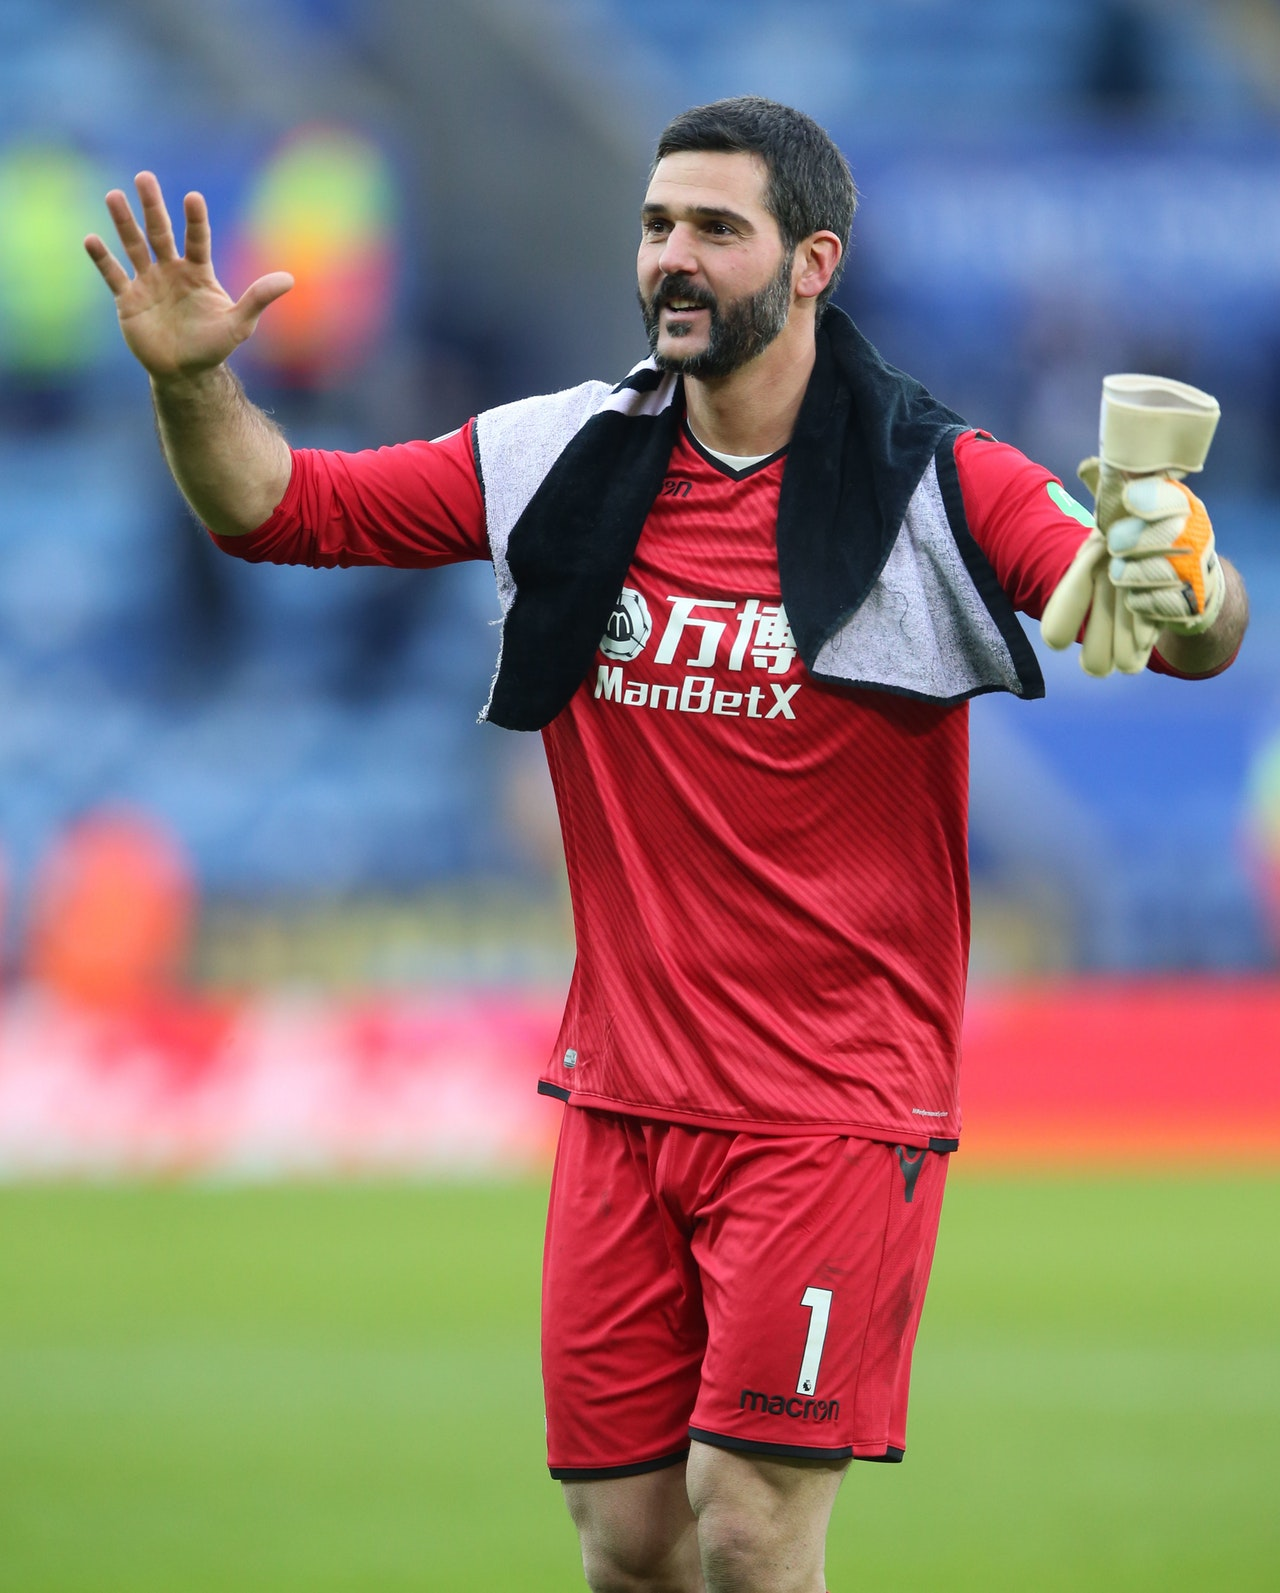 Speroni Pays Tribute To Eagles Fans